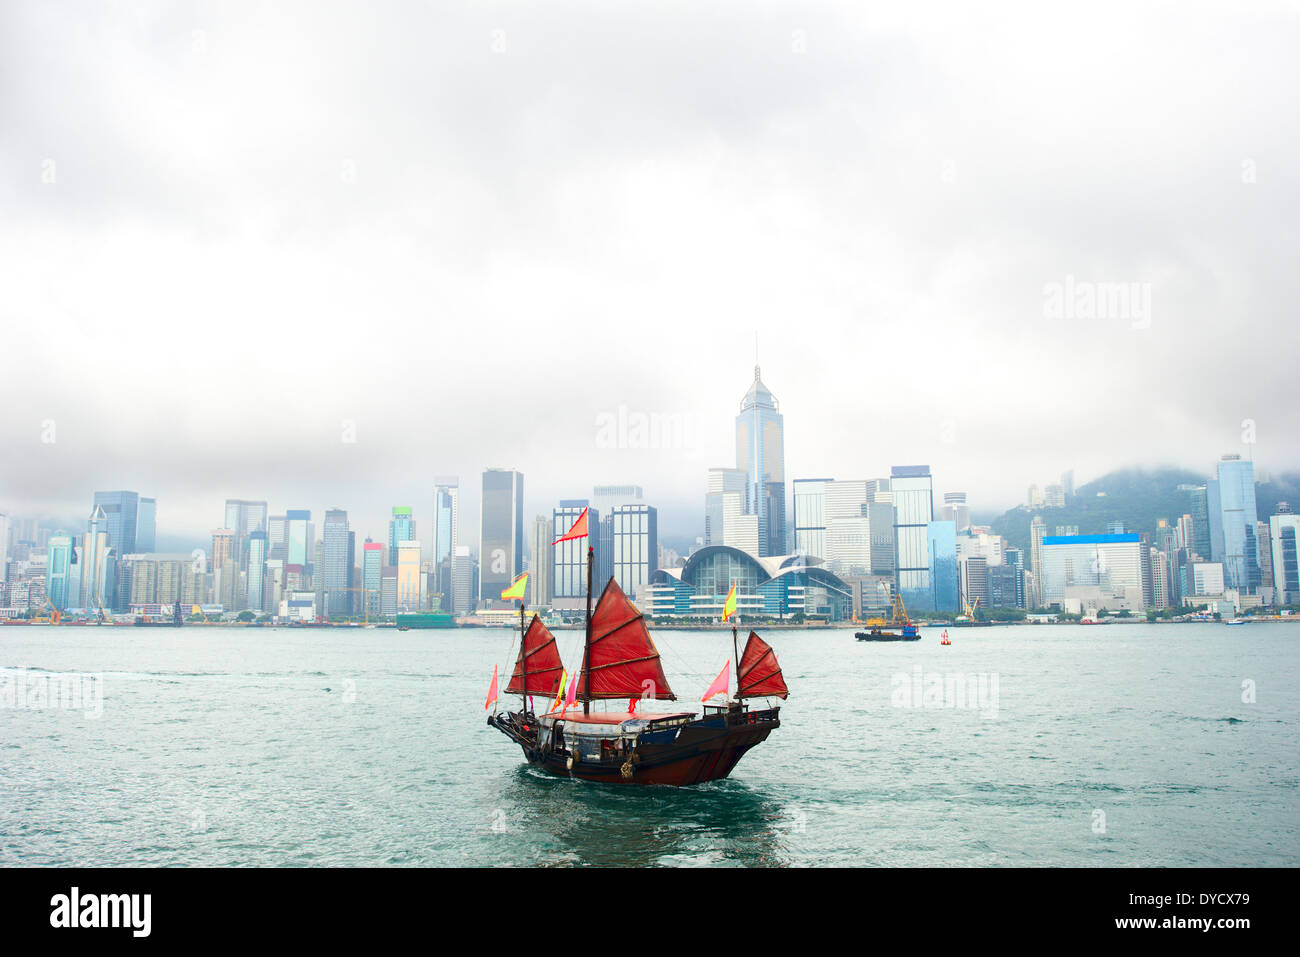 View on Hong Kong downtown from the sea with traditional chinese sailboat - Stock Image